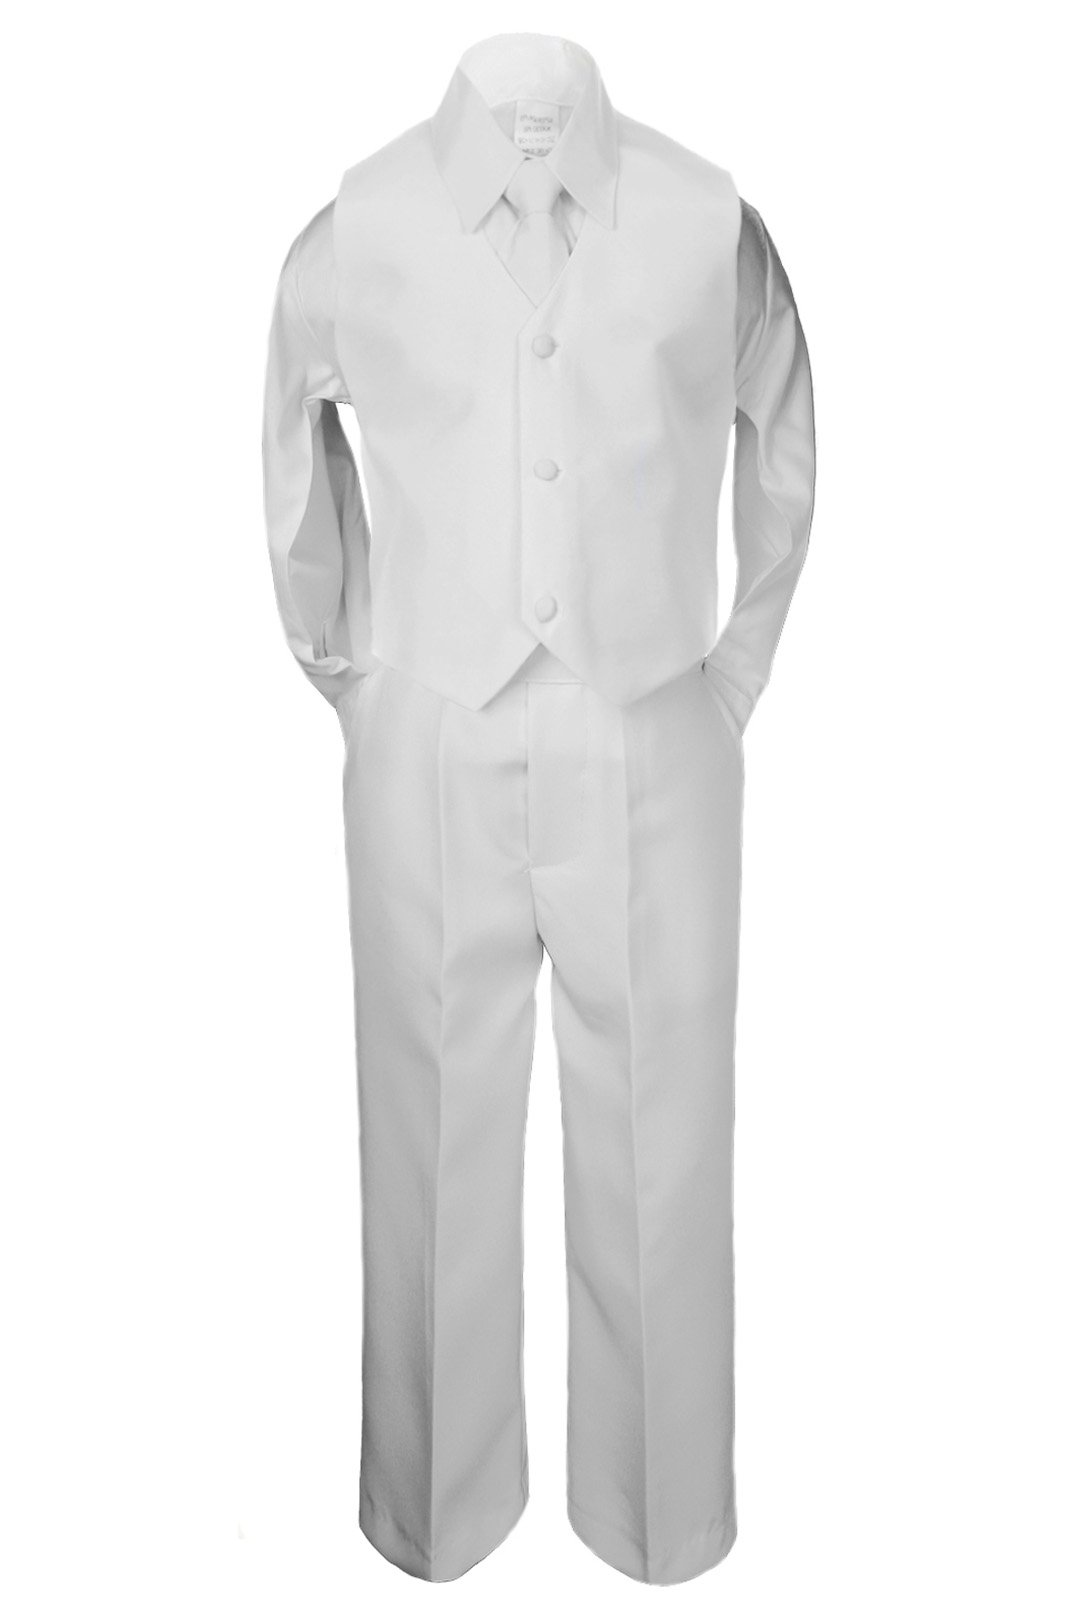 5pc Baby Boy Teen WHITE SUIT w/ Cancer Awareness Ribbon Adhesive LOVE HOPE Patch (2T, 5pc White suit set Only) by Unotux (Image #3)